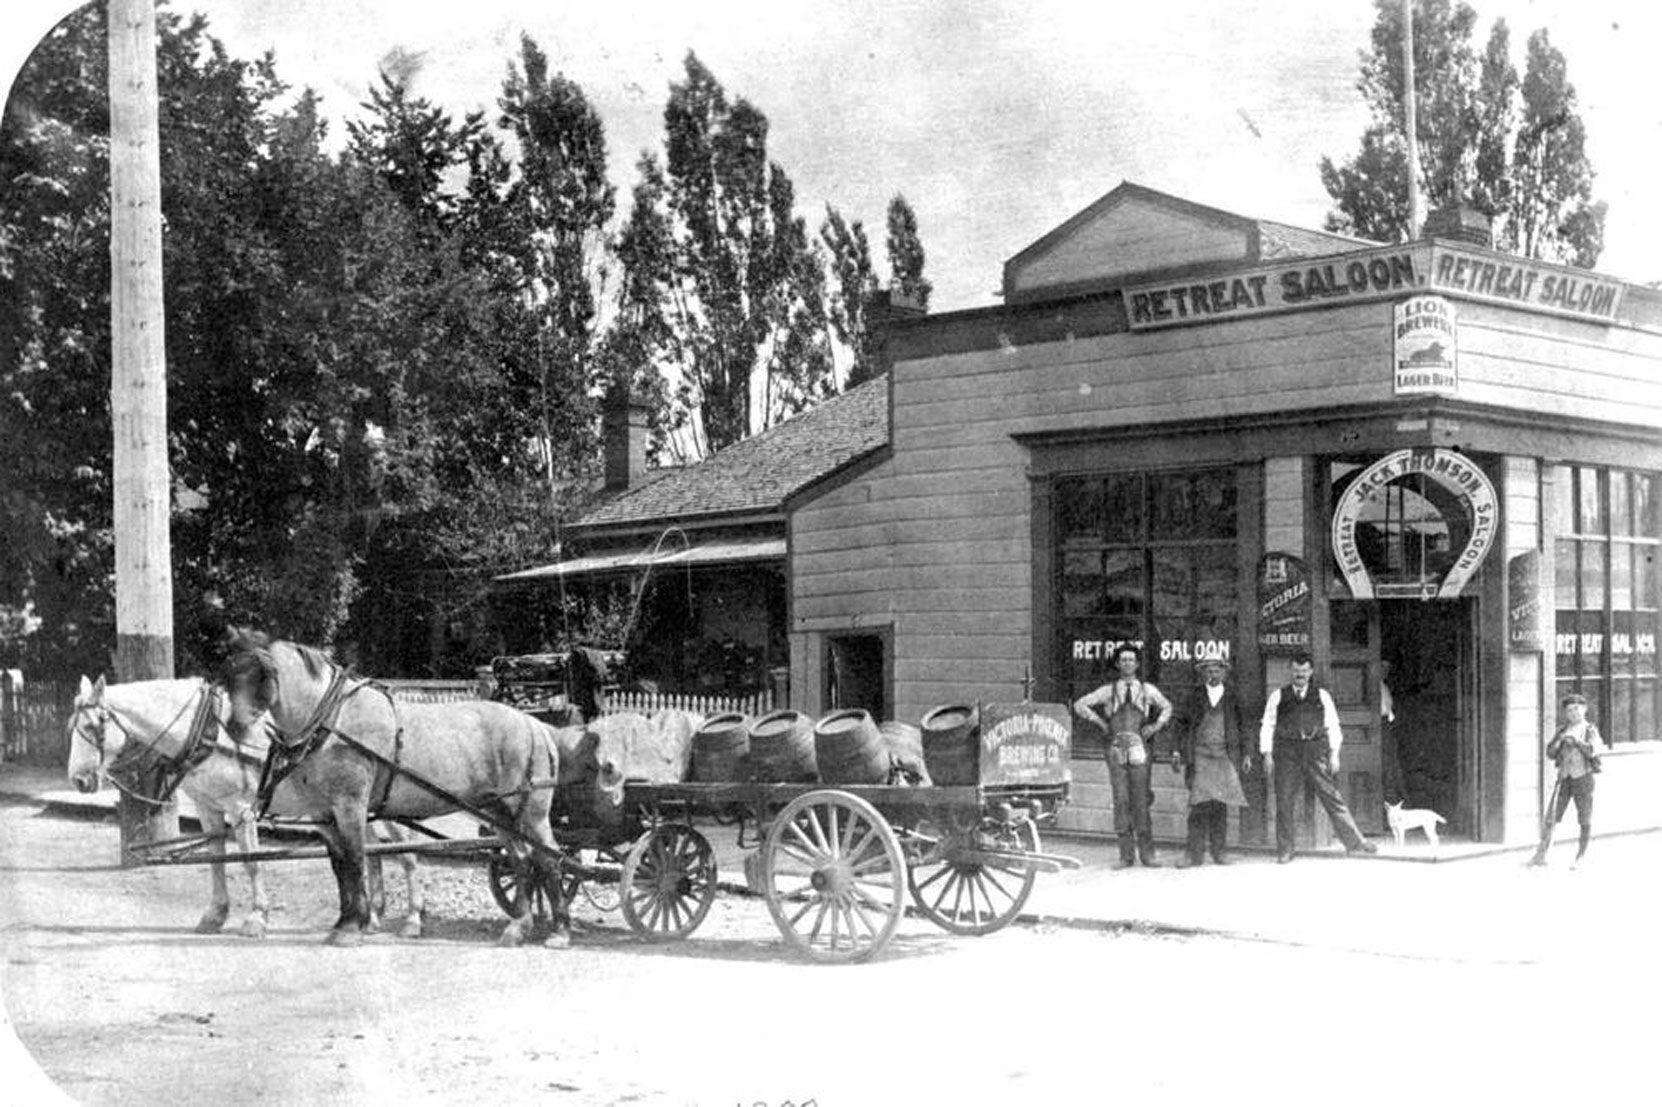 Joseph Wrigglesworth's Retreat Saloon, on the southeast corner of Yates Street and Blanshard Street in downtown Victoria, circa 1900. (BC Archives photo D-00334)